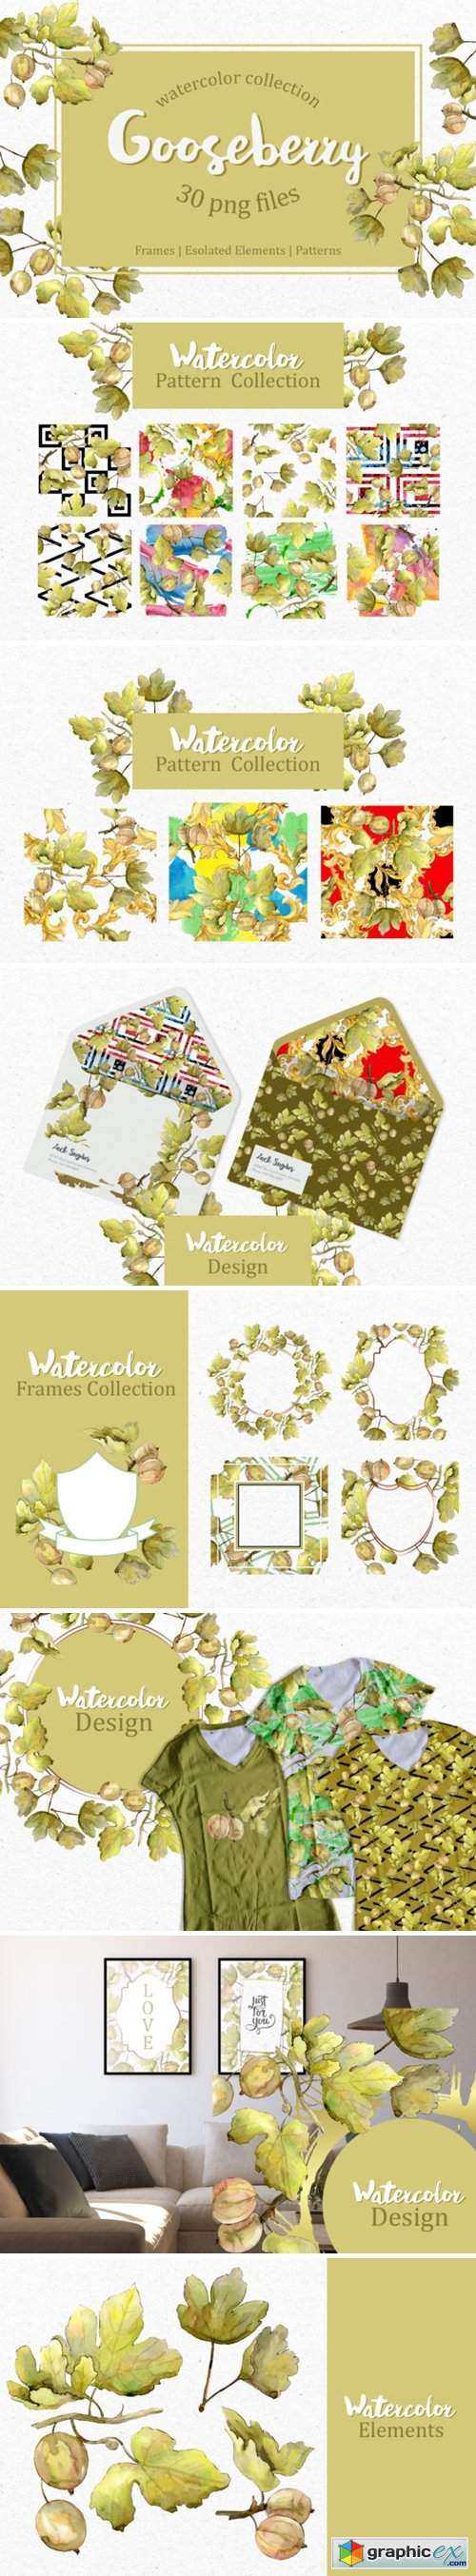 Watercolor Gooseberry Collection